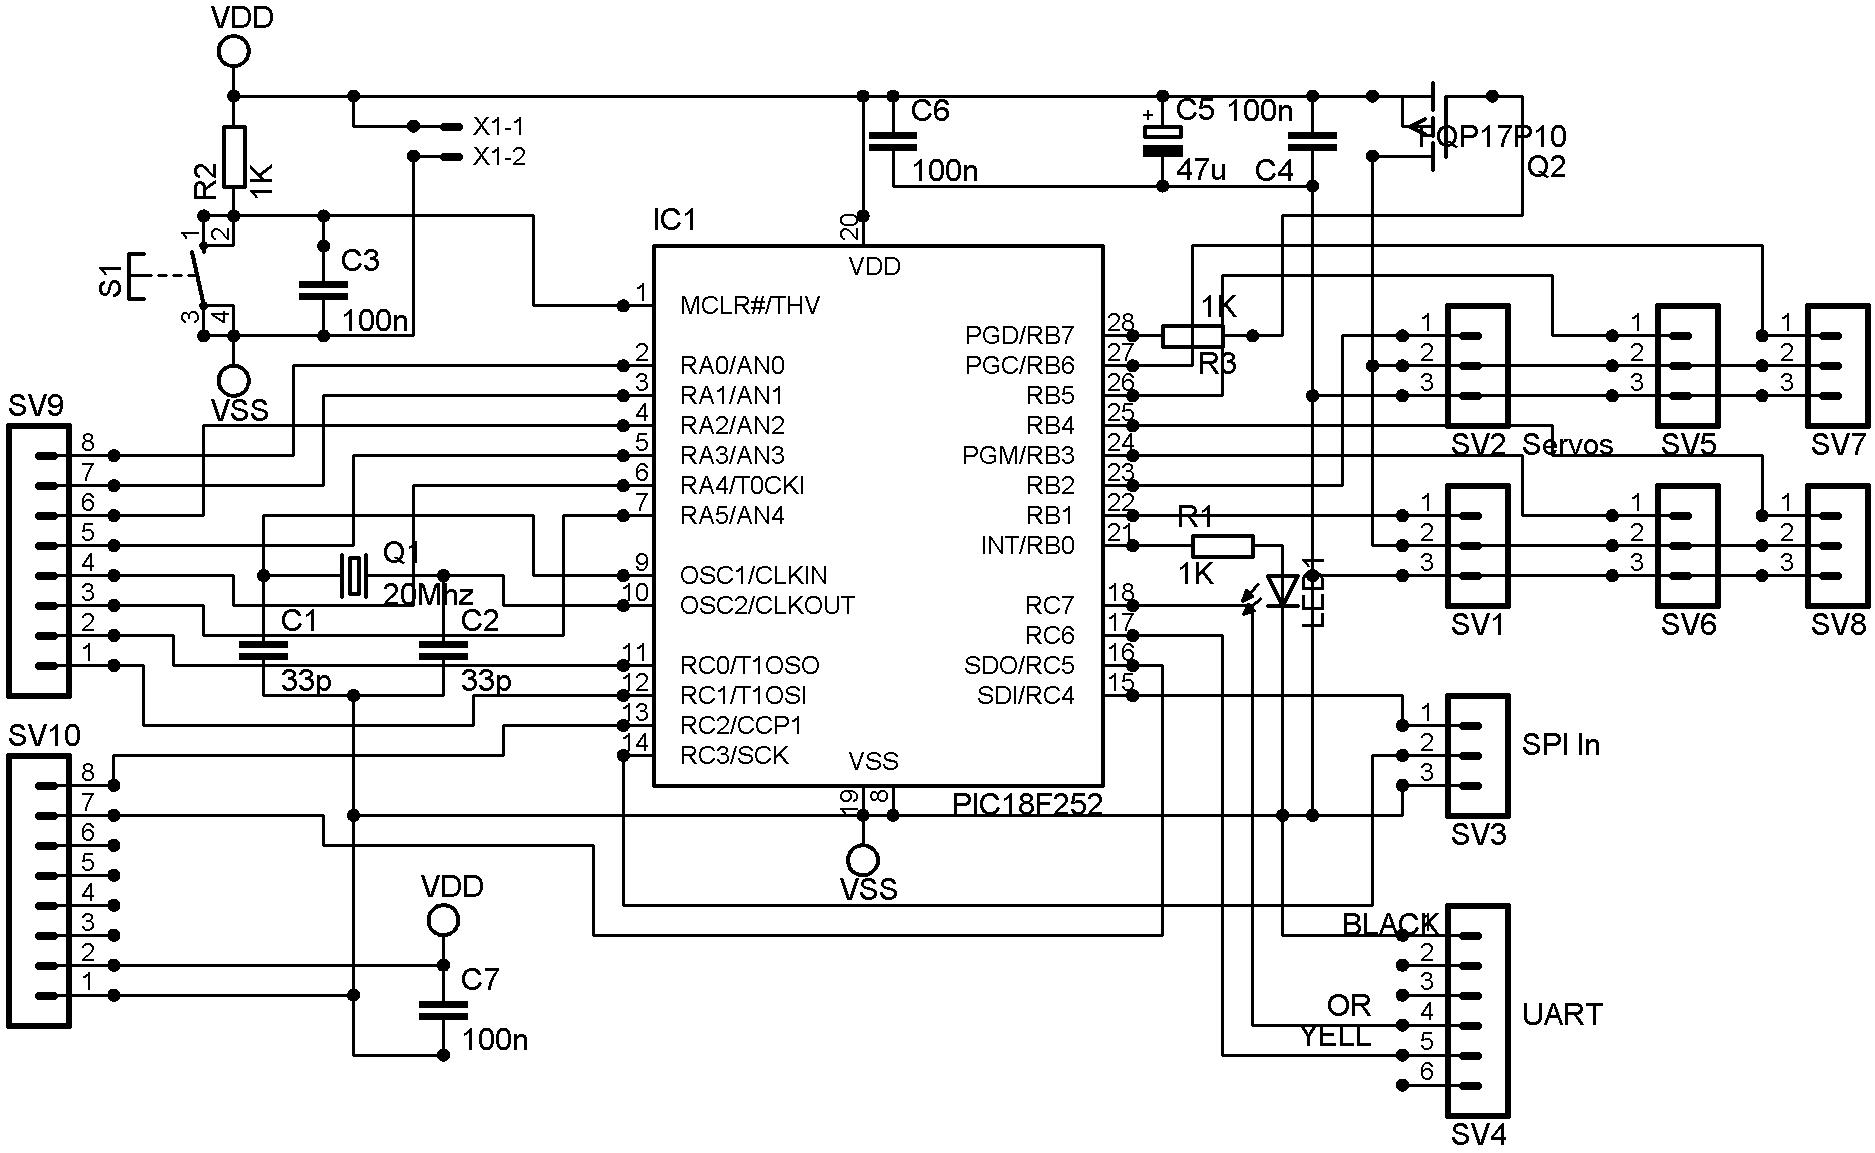 Cnc Wiring Schematic Controller Diagram And Engine 2011 01 Archive On